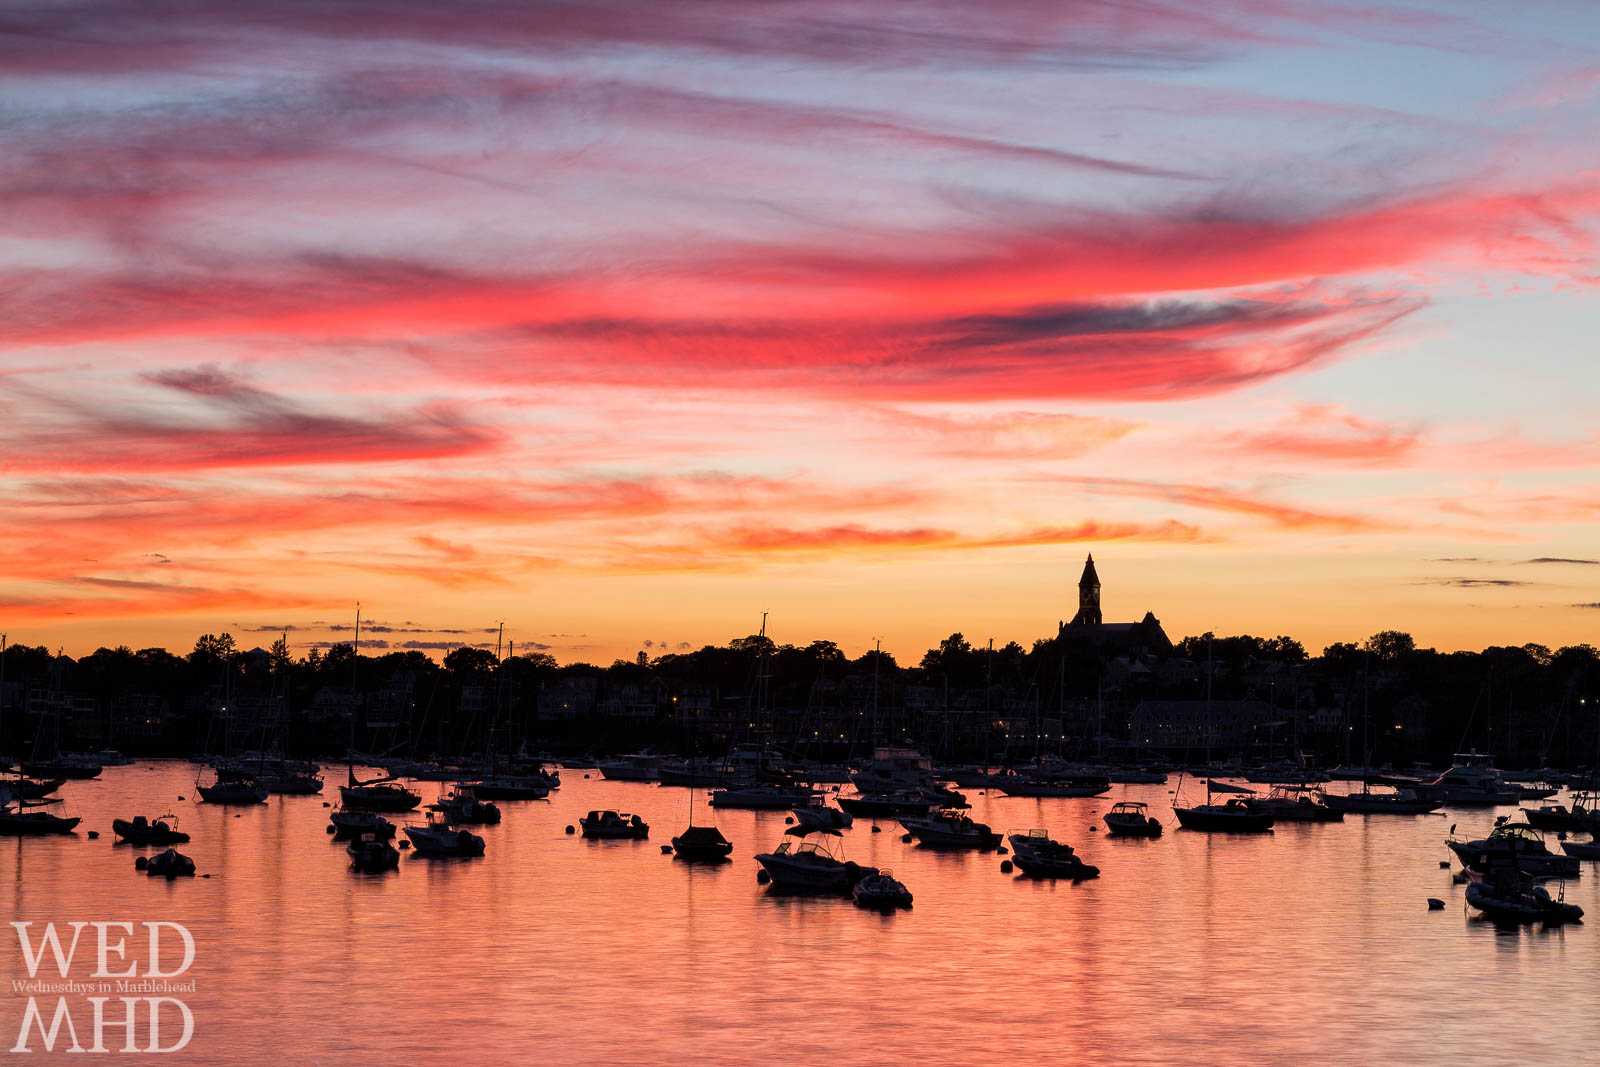 Marblehead Harbor Bathed in a Red Sunset